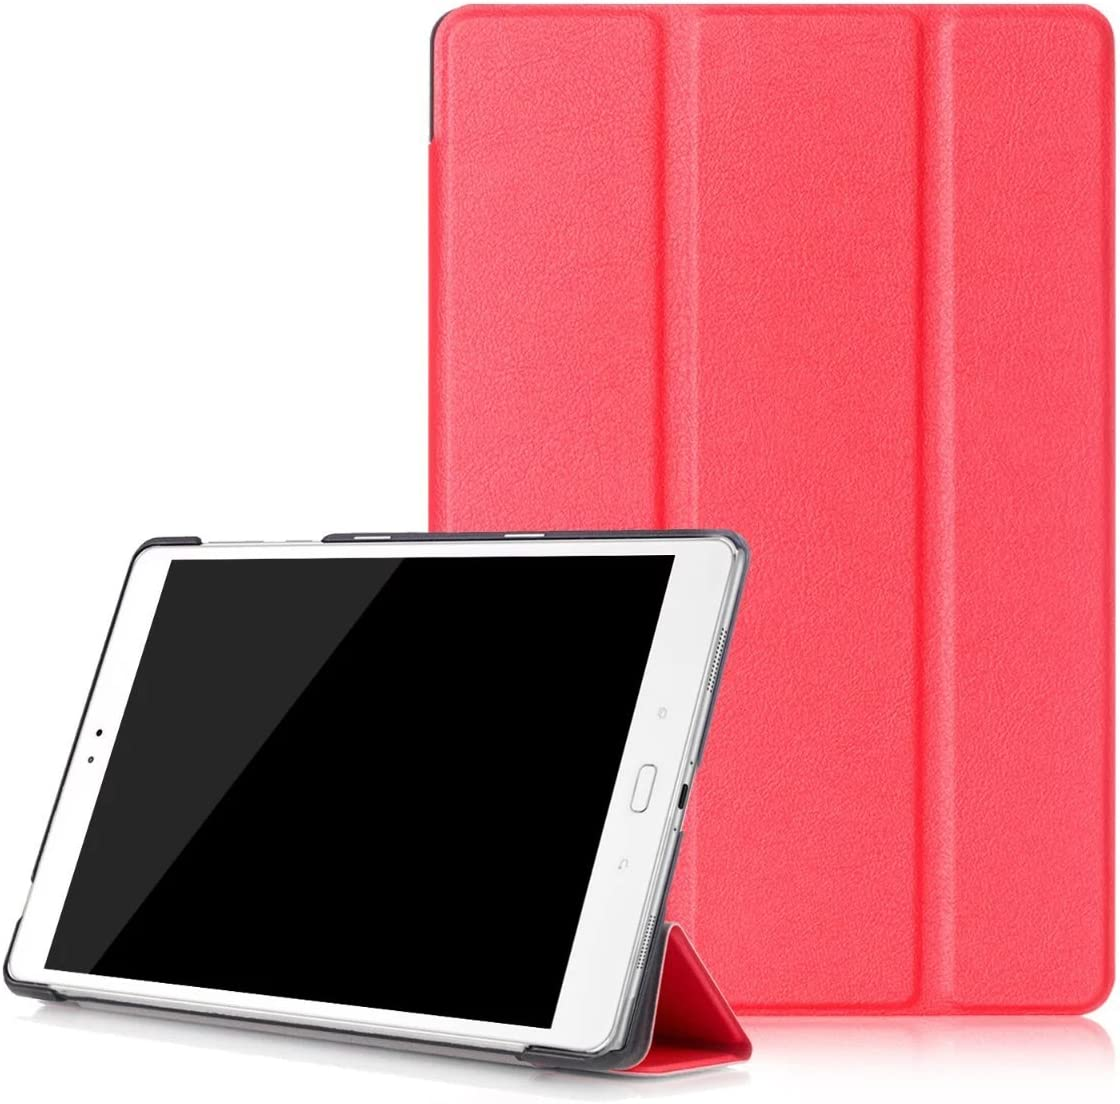 Black Kepuch Custer Case for ASUS Zenpad Z10 ZT500KL//3S 10 Z500KL,Ultra-thin PU-Leather Hard Shell Cover for ASUS Zenpad Z10 ZT500KL//3S 10 Z500KL